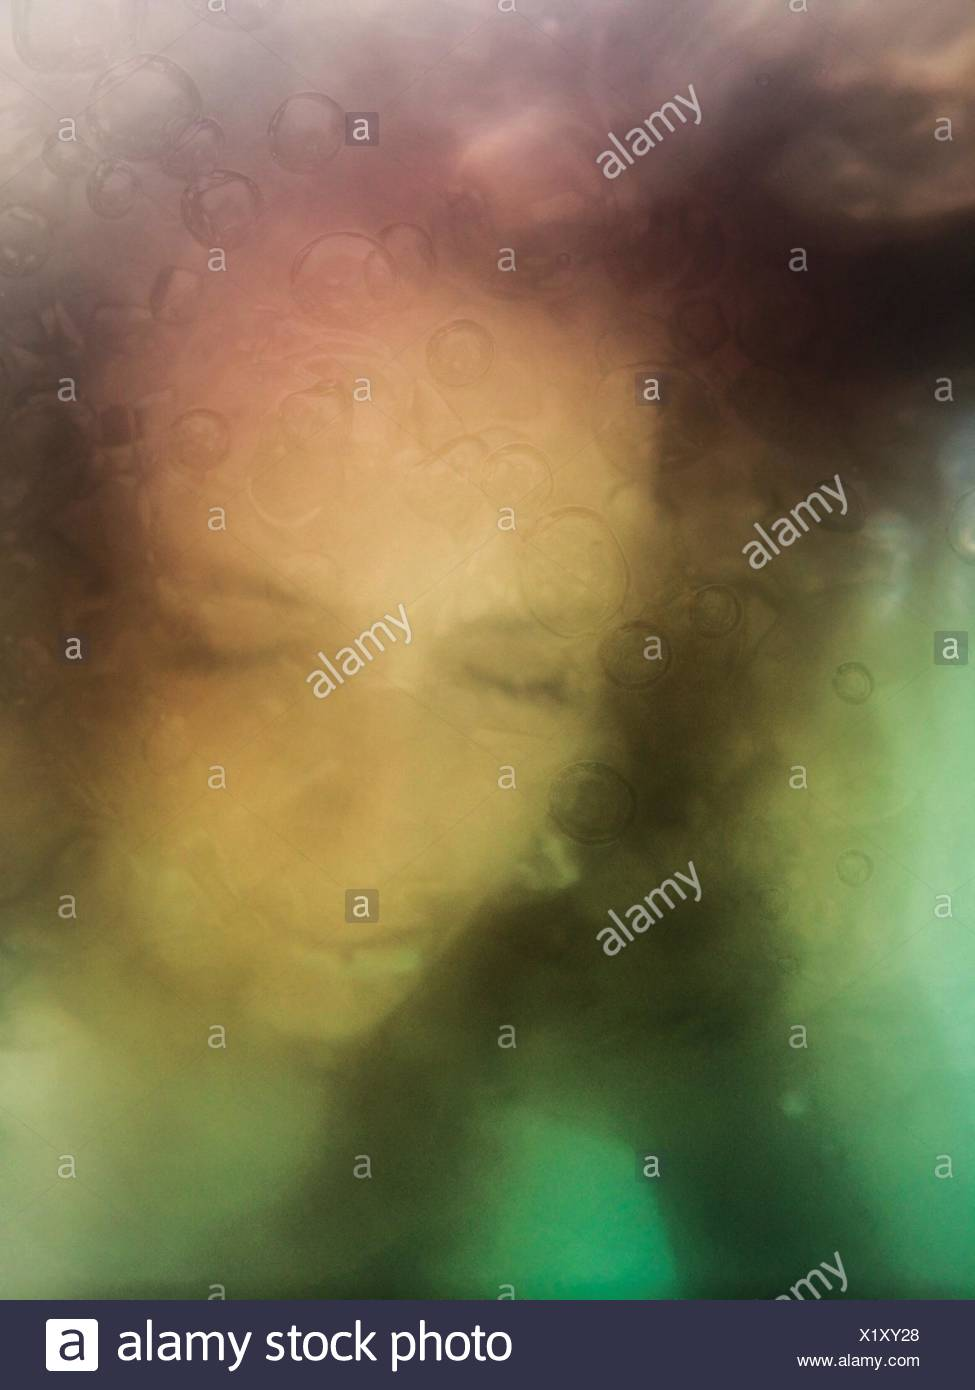 Creative Selfie With Underwater Effect - Stock Image